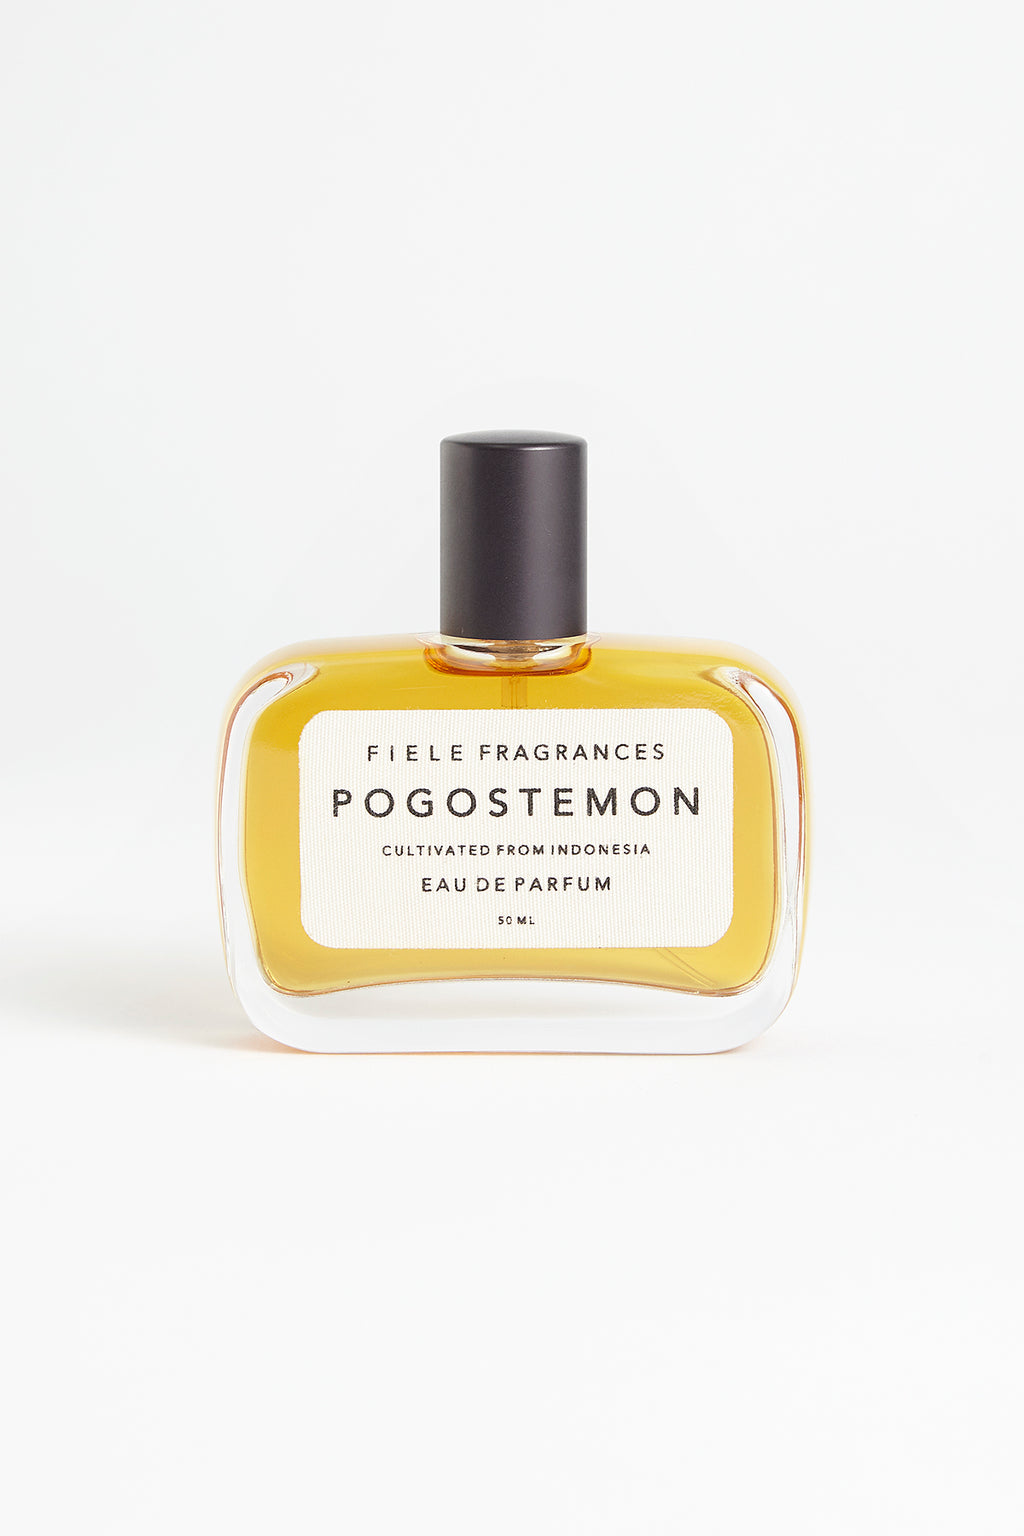 FIELE FRAGRANCE - POGOSTEMON